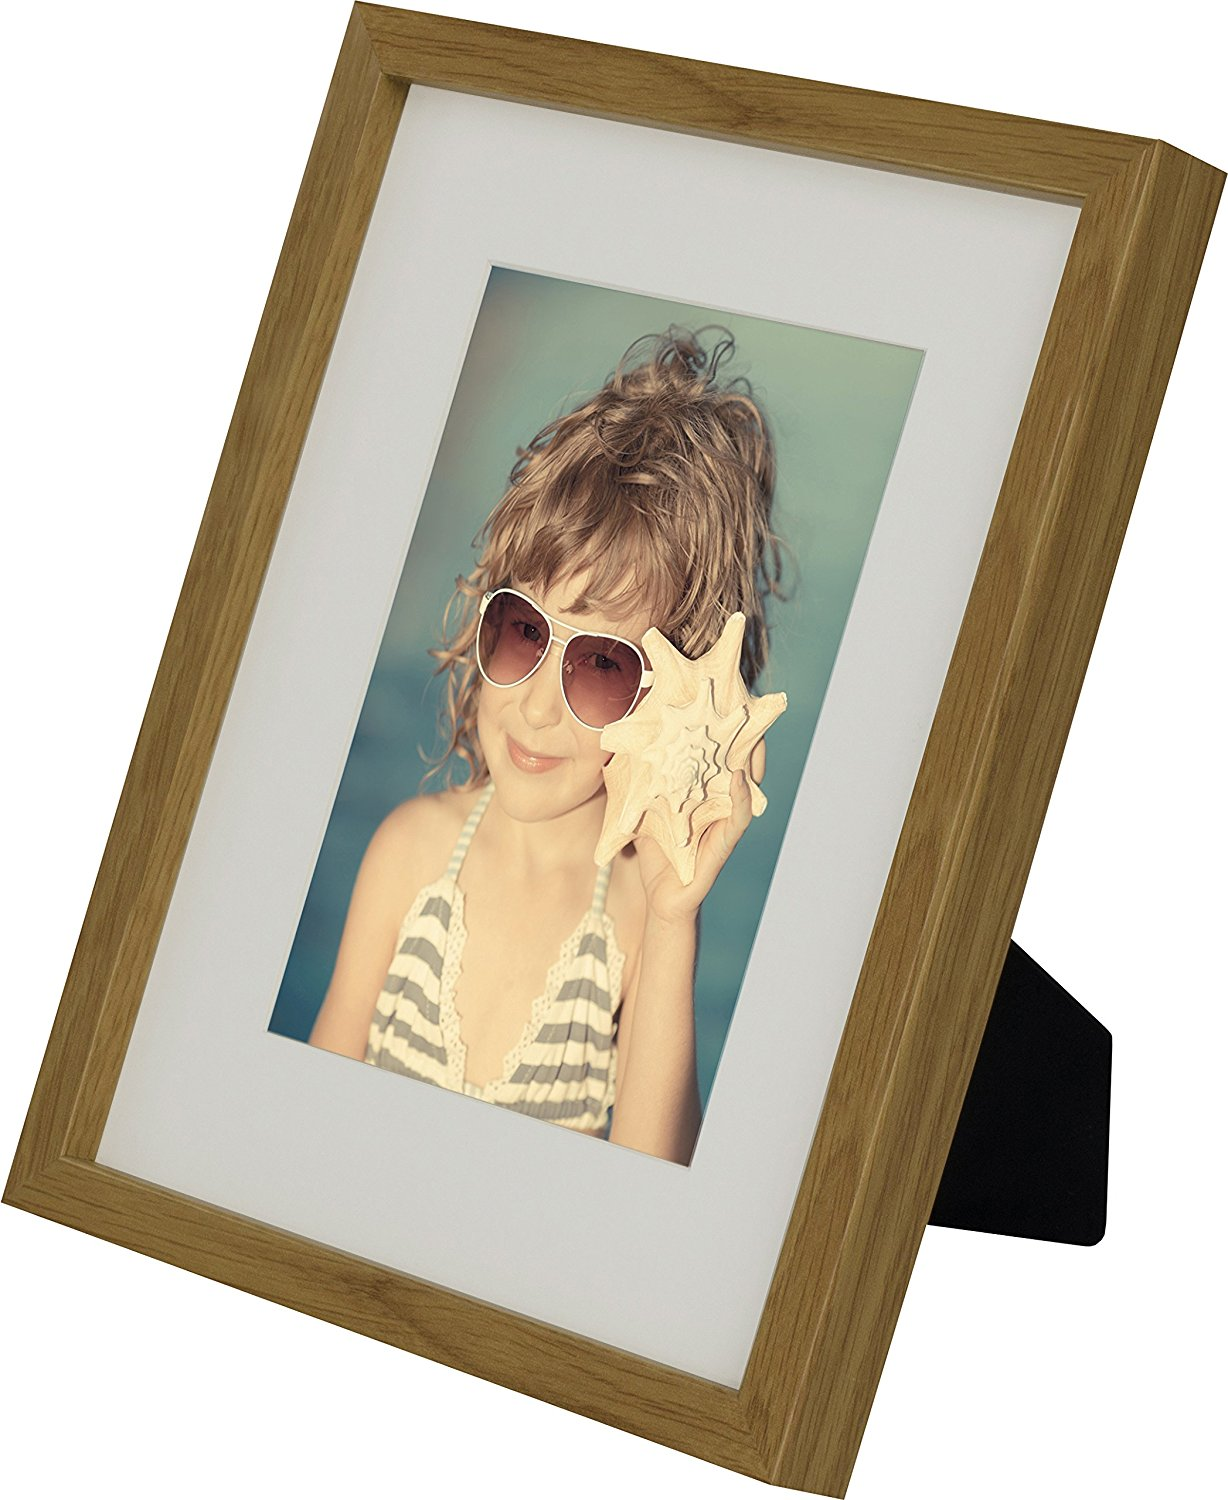 8 x 10-Inch Picture Photo Frame with mount for 5 x 7-Inch photo, OAK